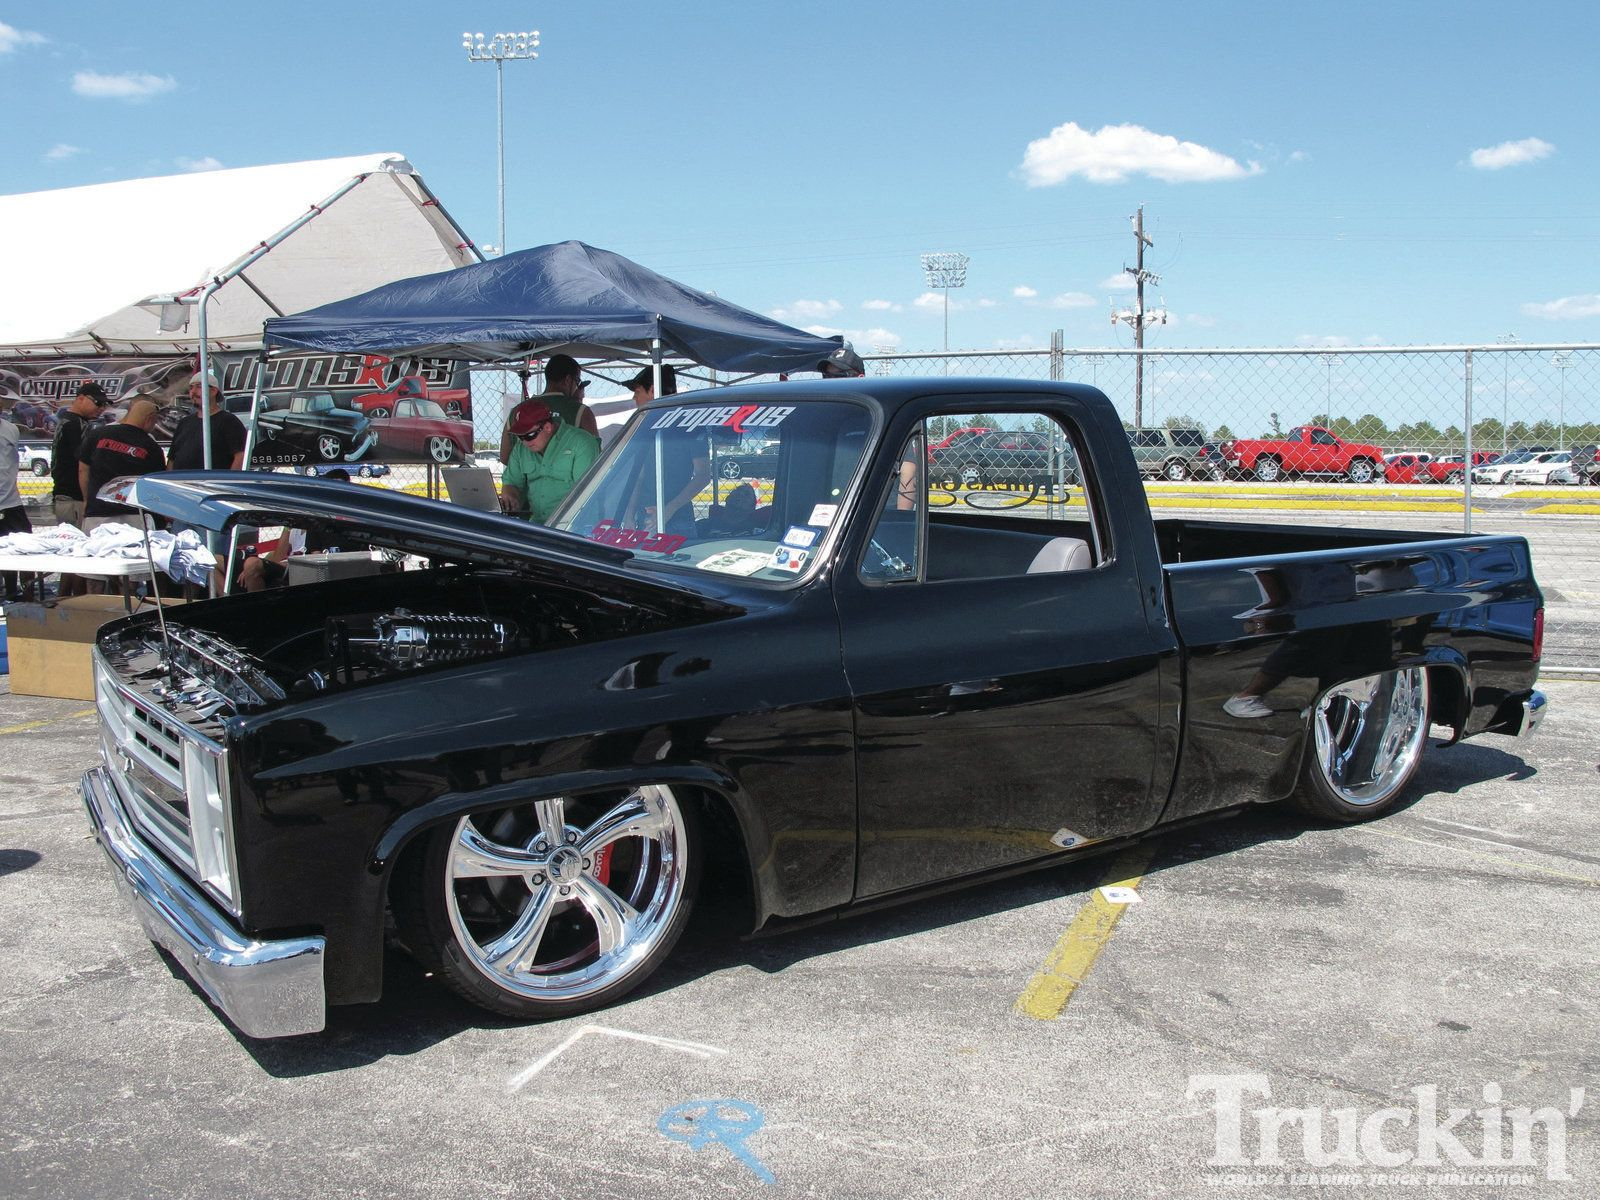 Used Chevy Trucks Houston Picture Cool Car Wallpapers For Your